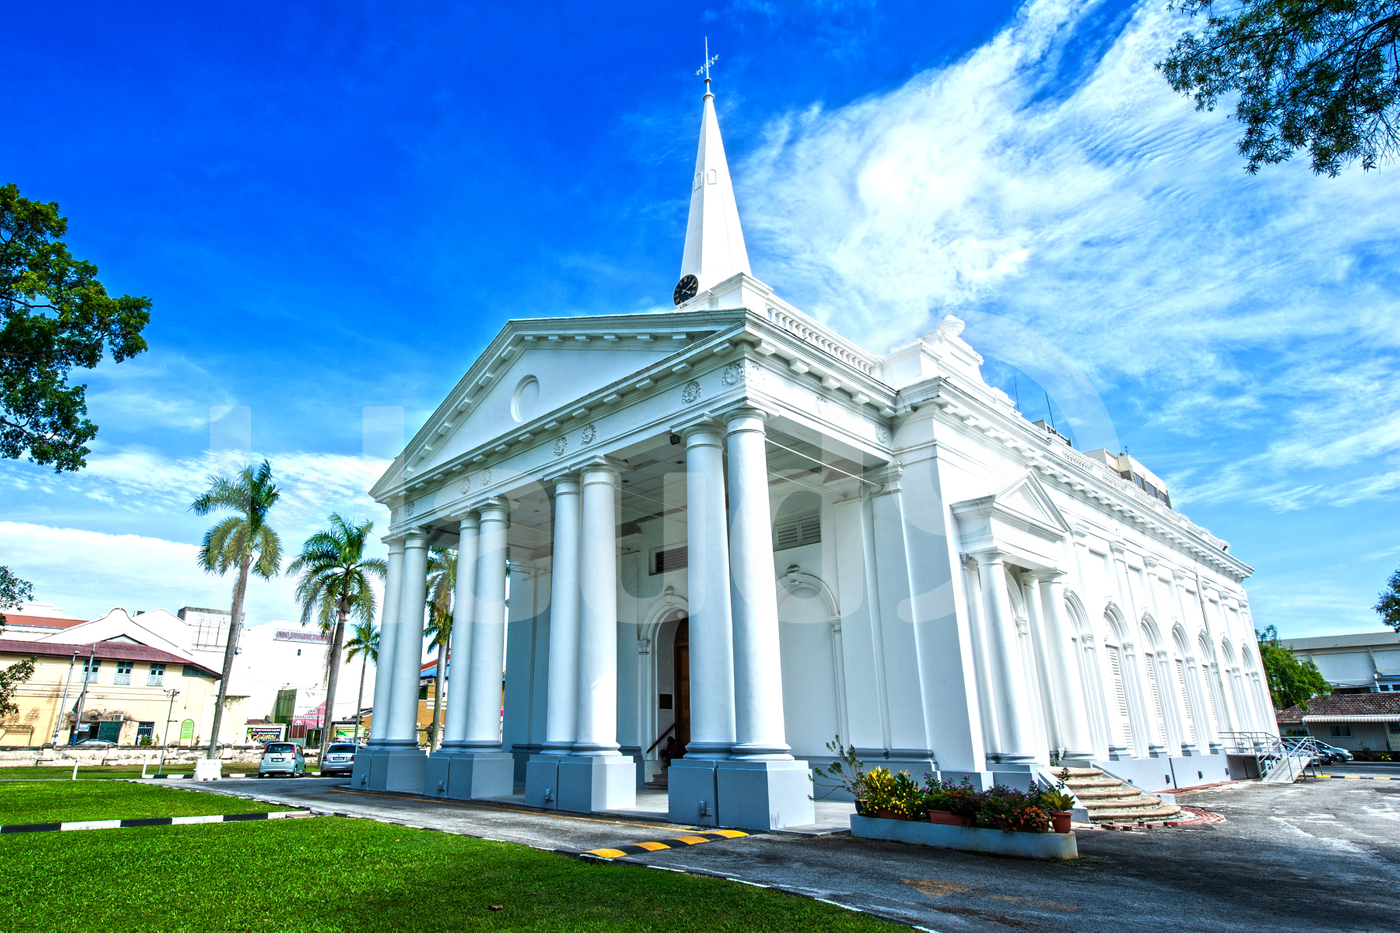 ST GEORGE CHURCH - PENANG